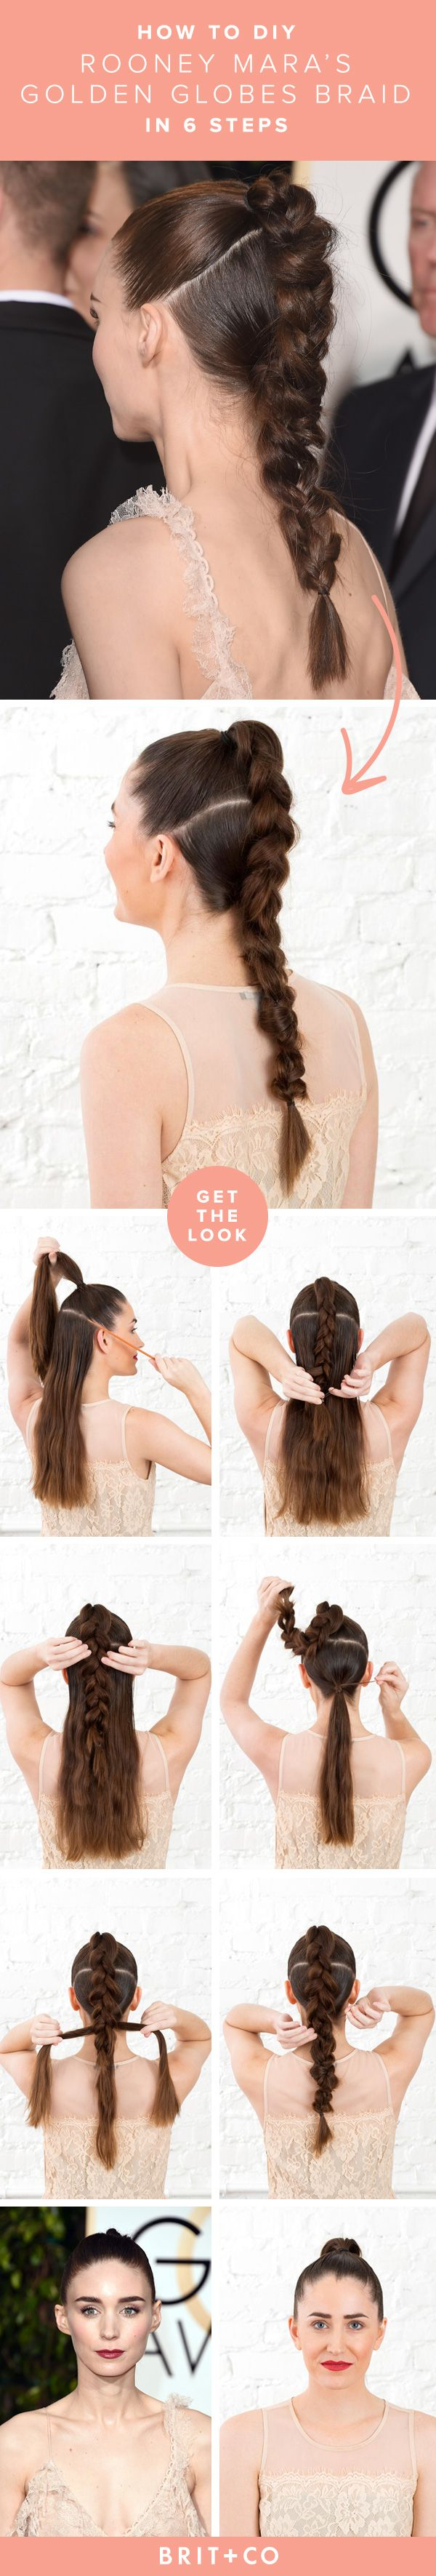 Follow this easy hair tutorial to recreate Rooney Mara's Golden Globes braid for yourself in 6 steps + 5 minutes flat.